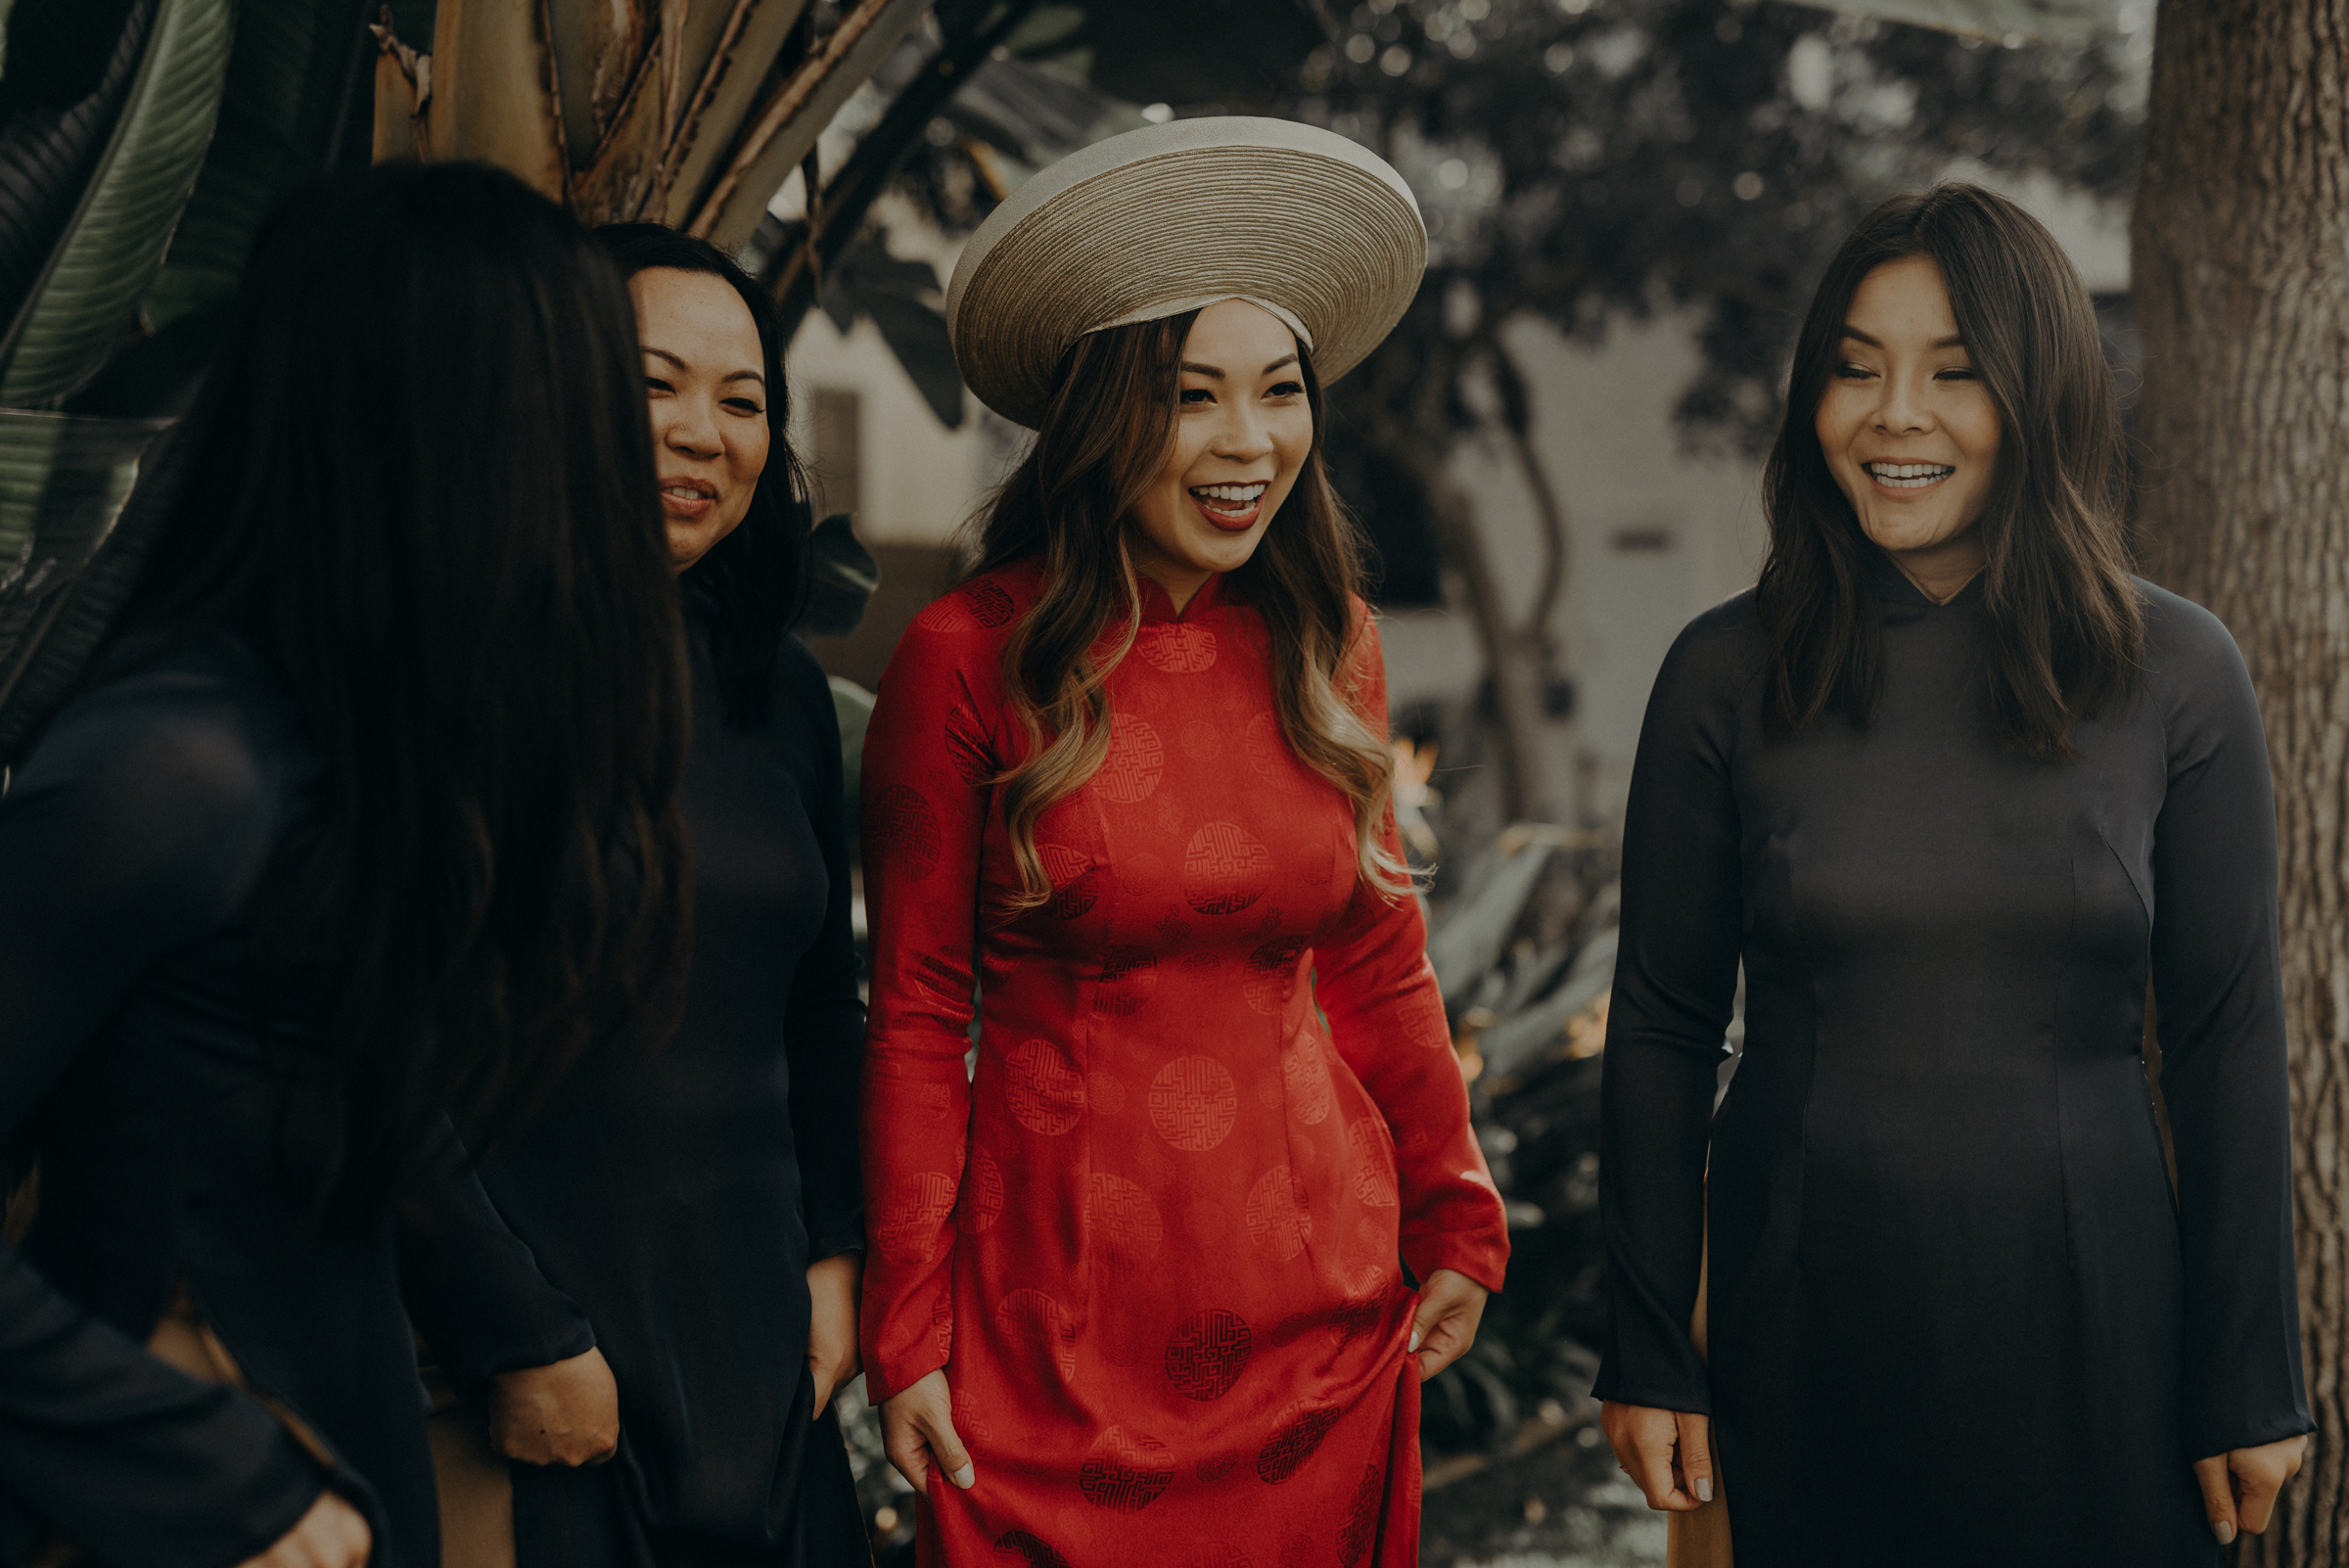 Los Angeles Wedding Photographer - IsaiahAndTaylor.com - The Ebell of Long Beach Wedding - Traditional Vietnamese tea ceremony-067.jpg